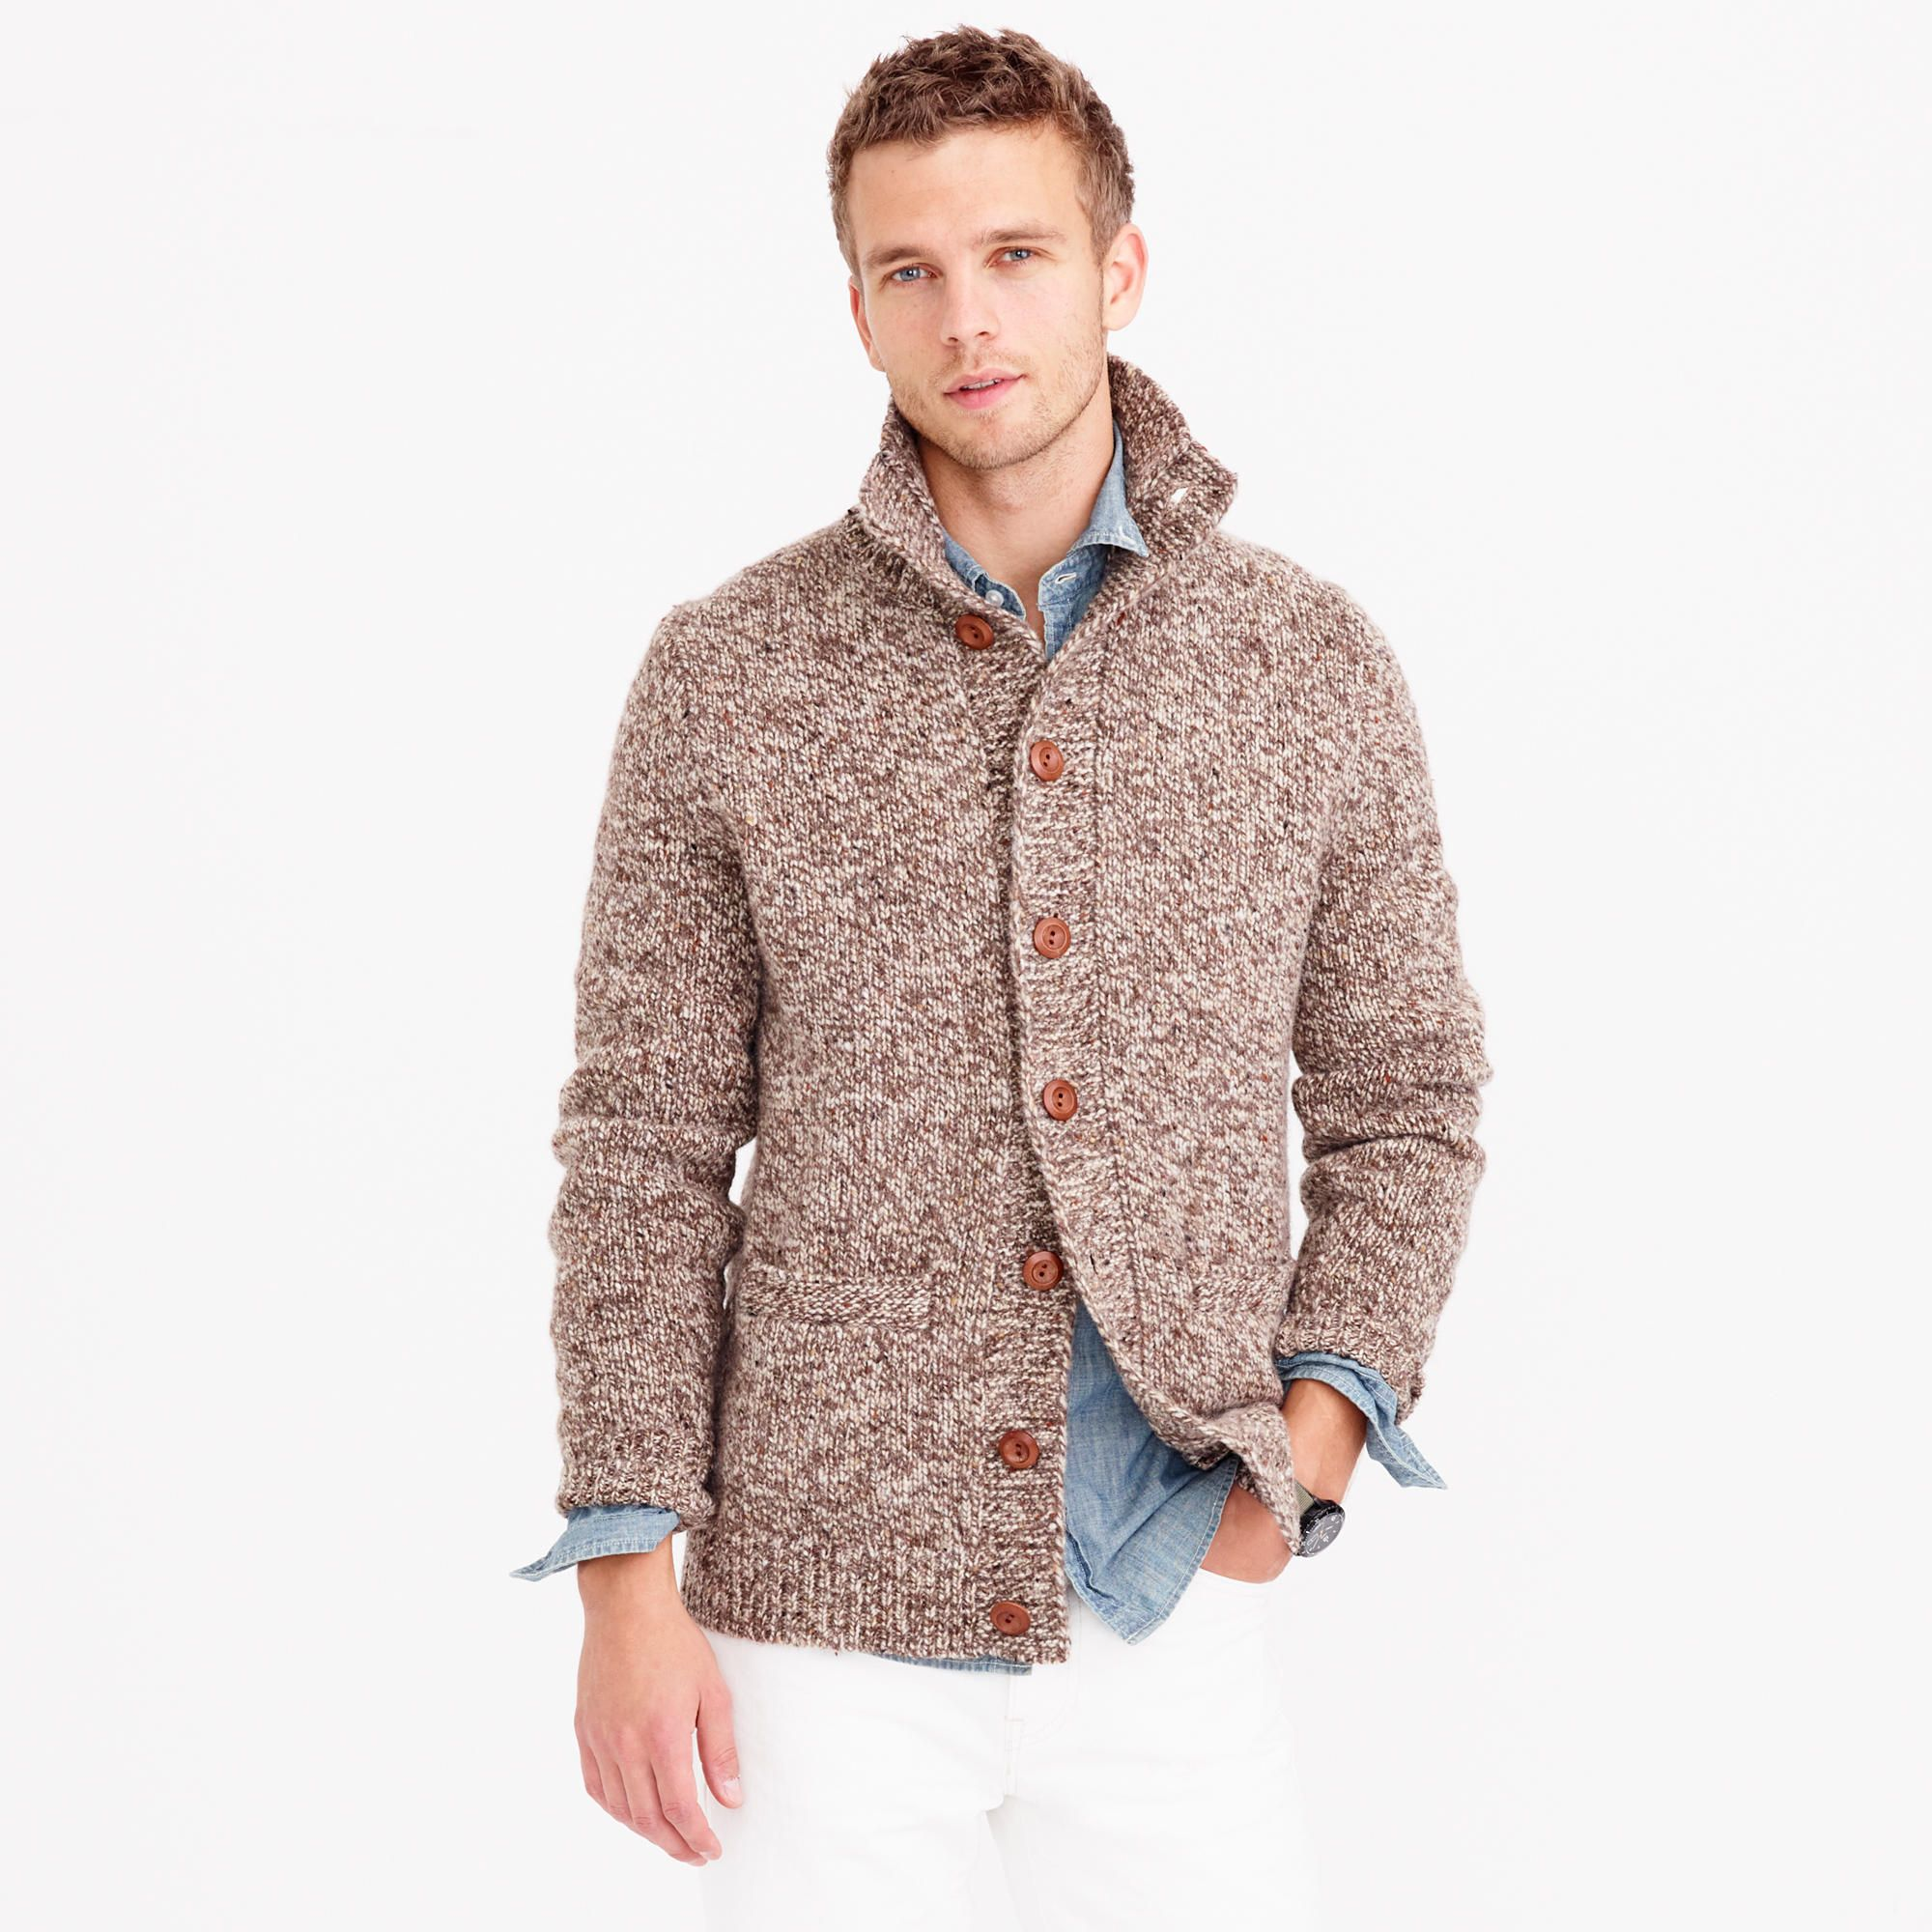 Donegal Wool Mockneck Cardigan Sweater : Men's Sweaters | J.Crew ...